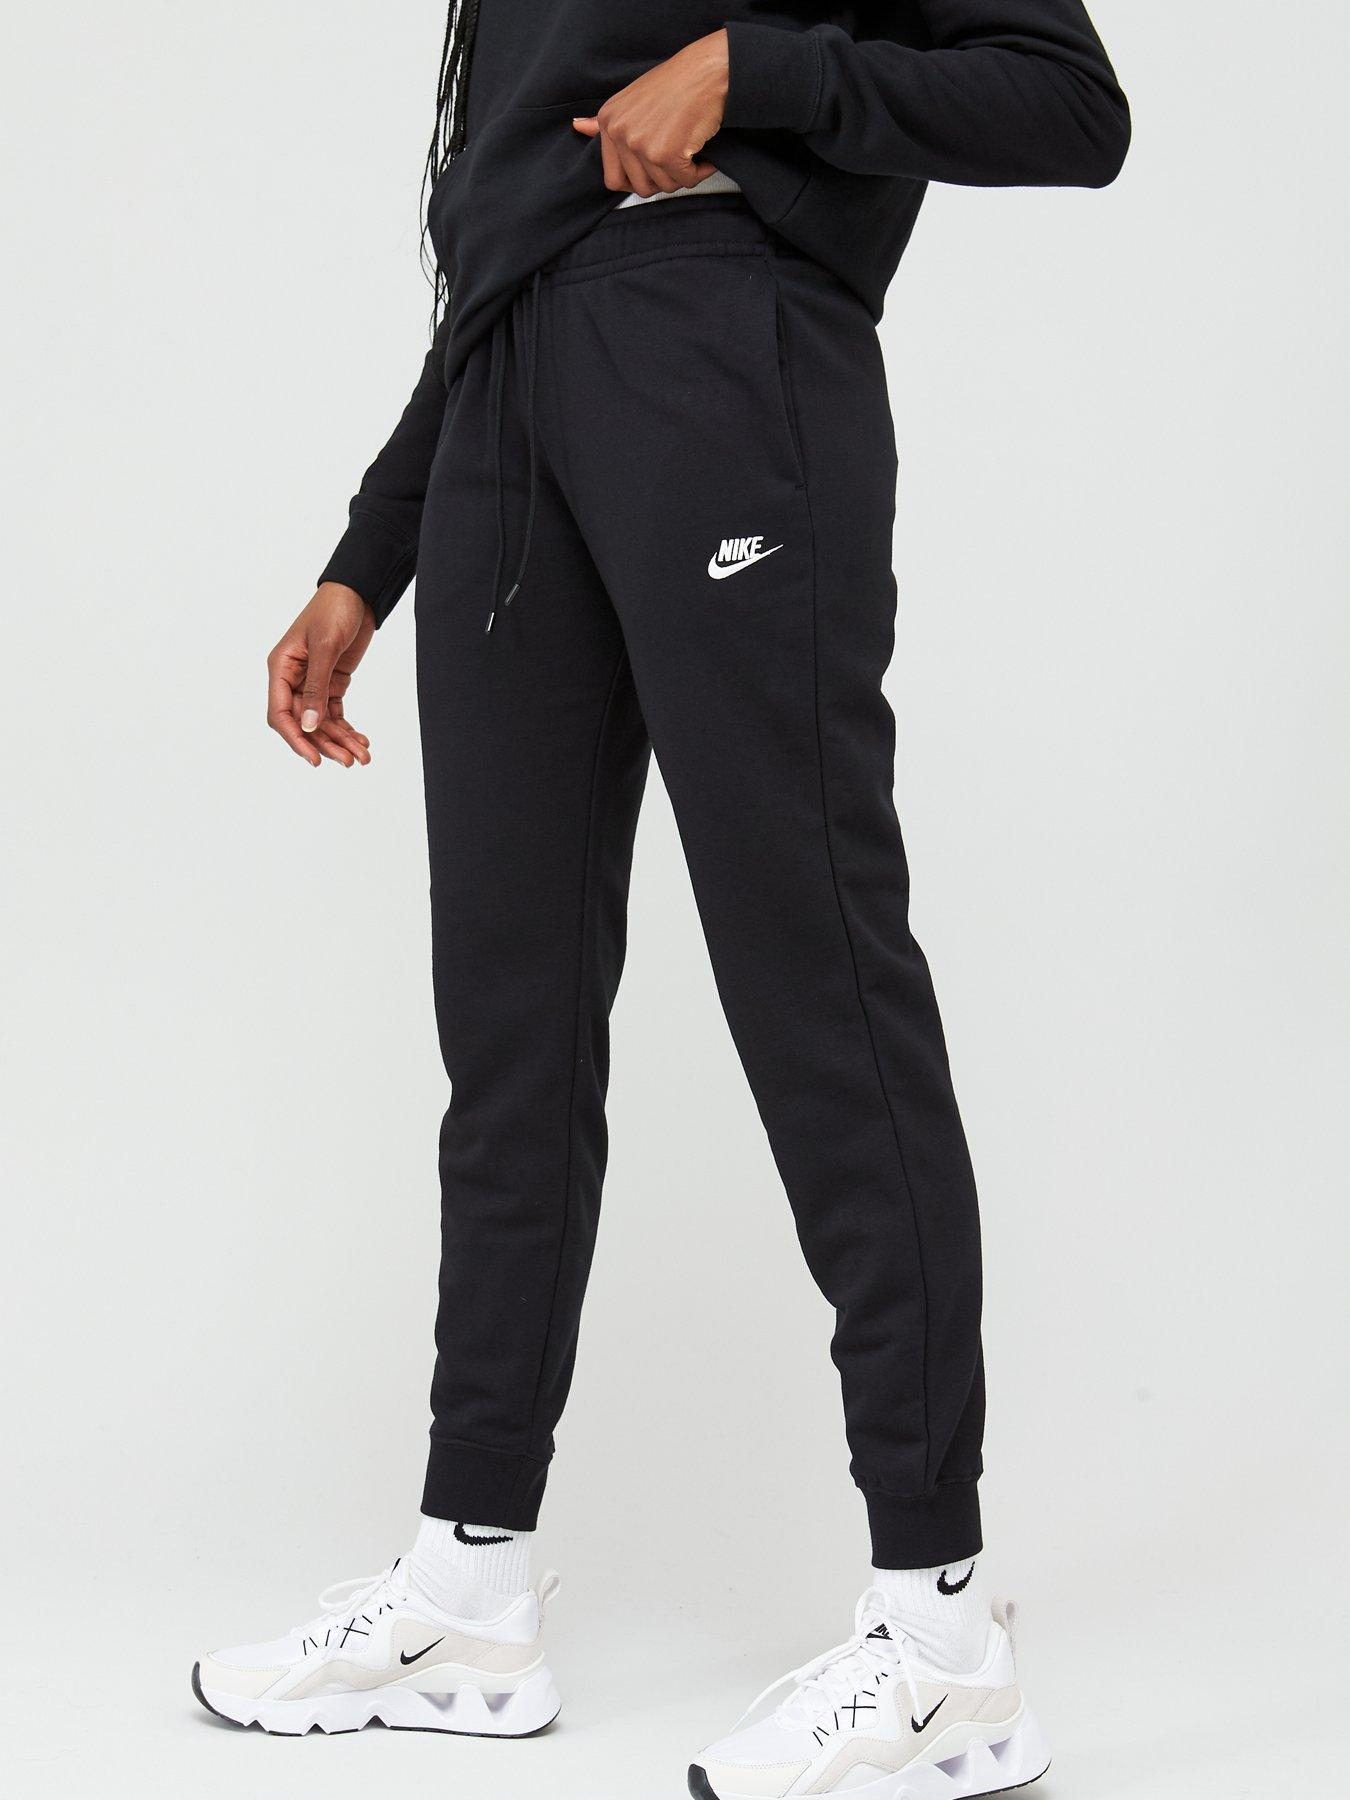 Tracksuit Bottoms   Tracksuits